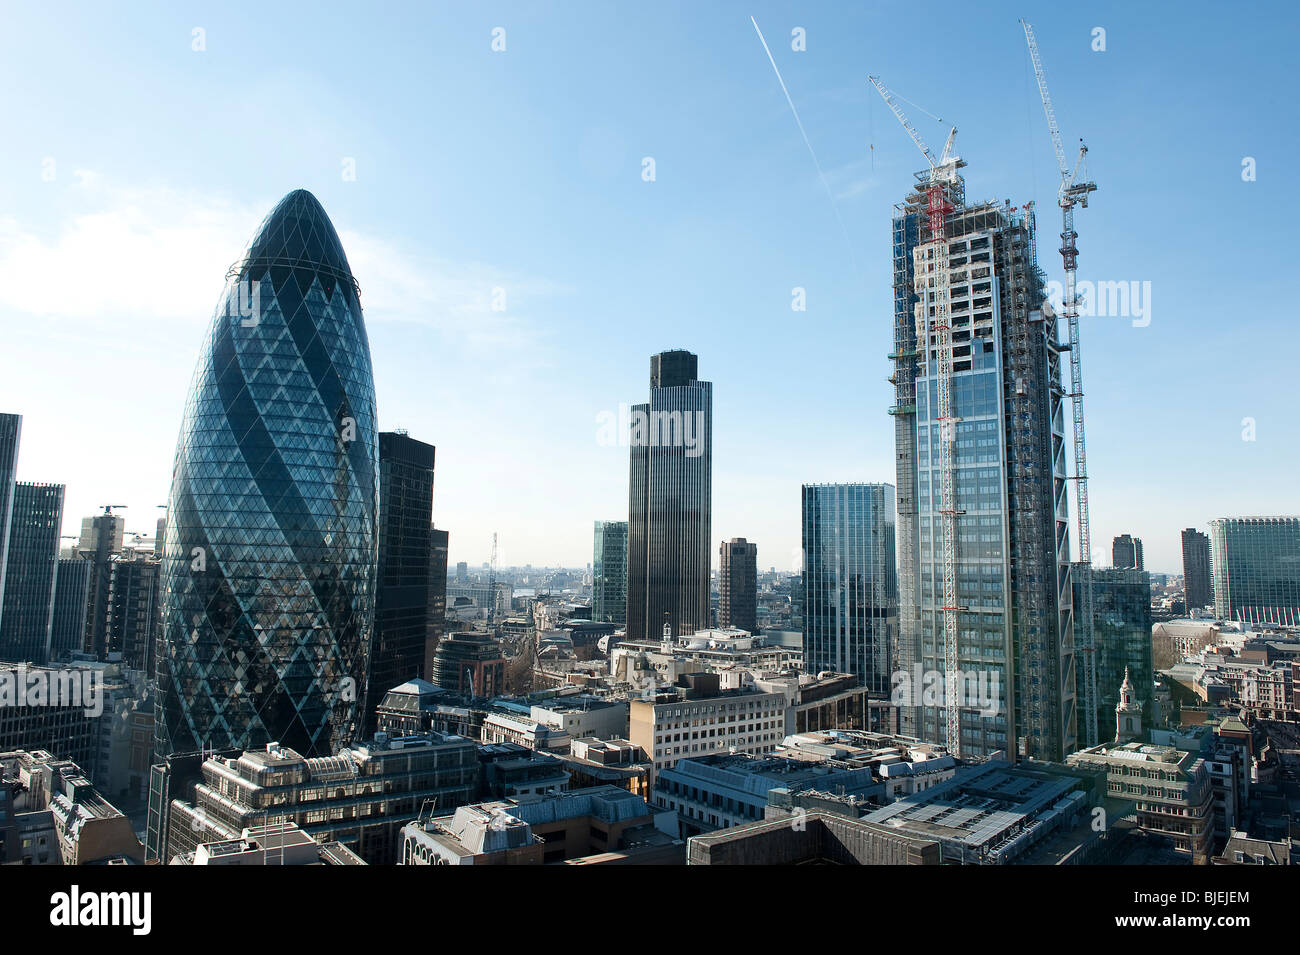 The City of London with views of the Gherkin and Nat West Tower and new construction work being carried out - Stock Image